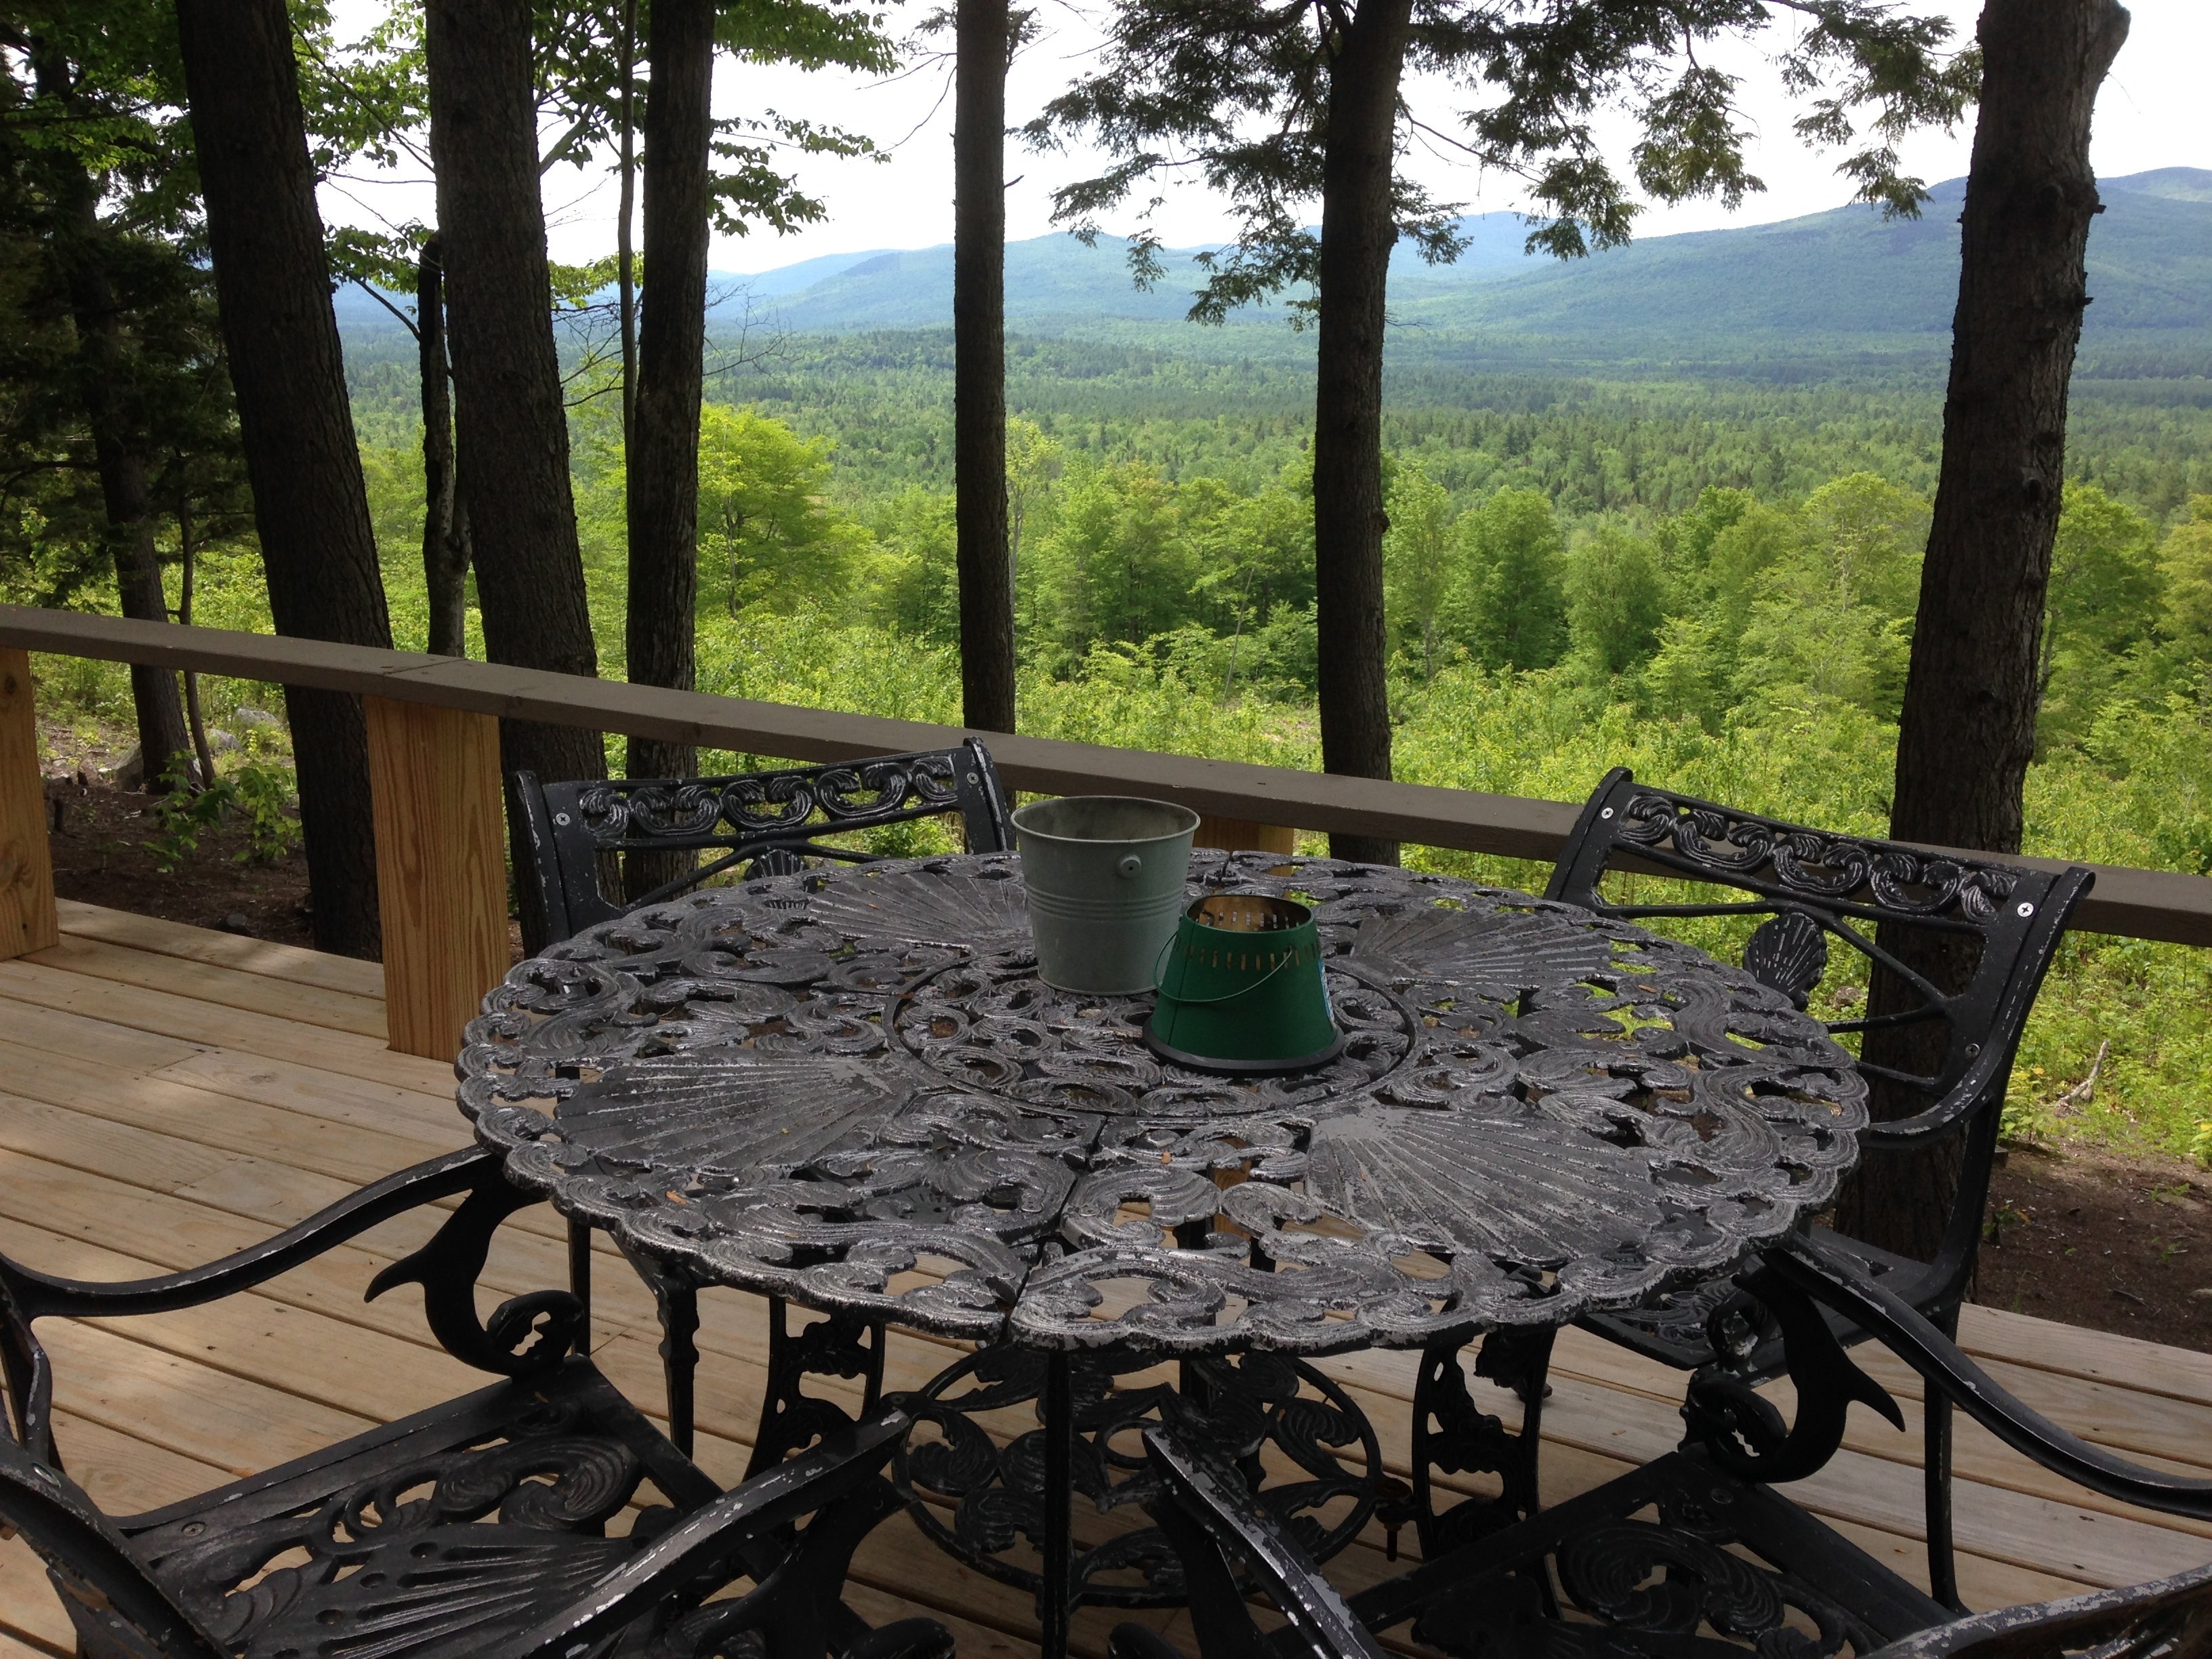 Dining al fresco under the trees. No better view in all of Maine!